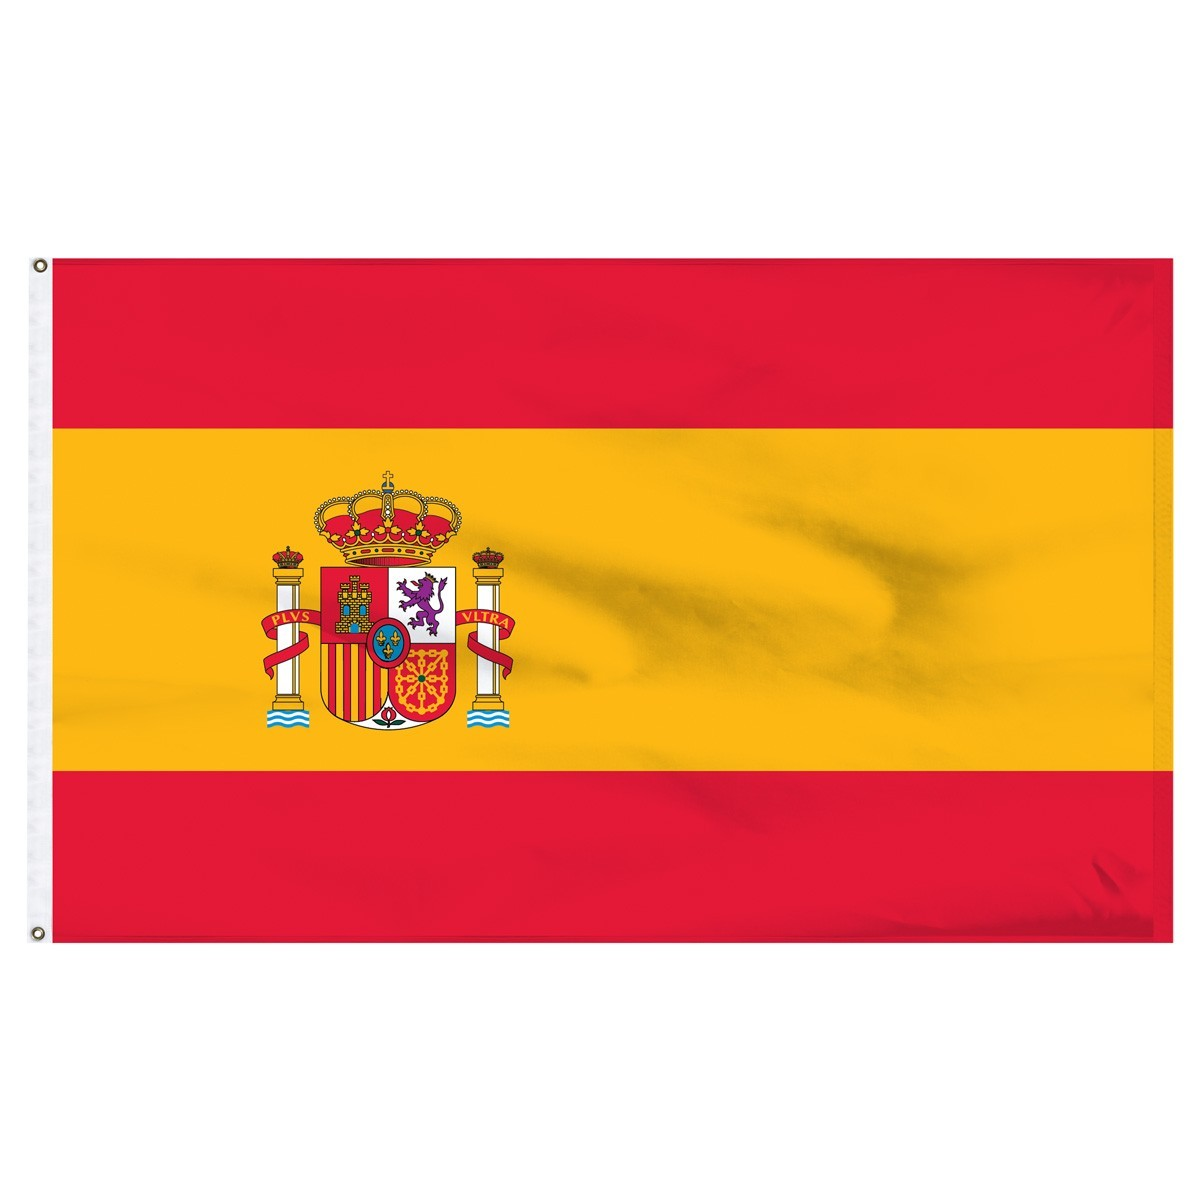 Spain 3' x 5' Outdoor Nylon Flag